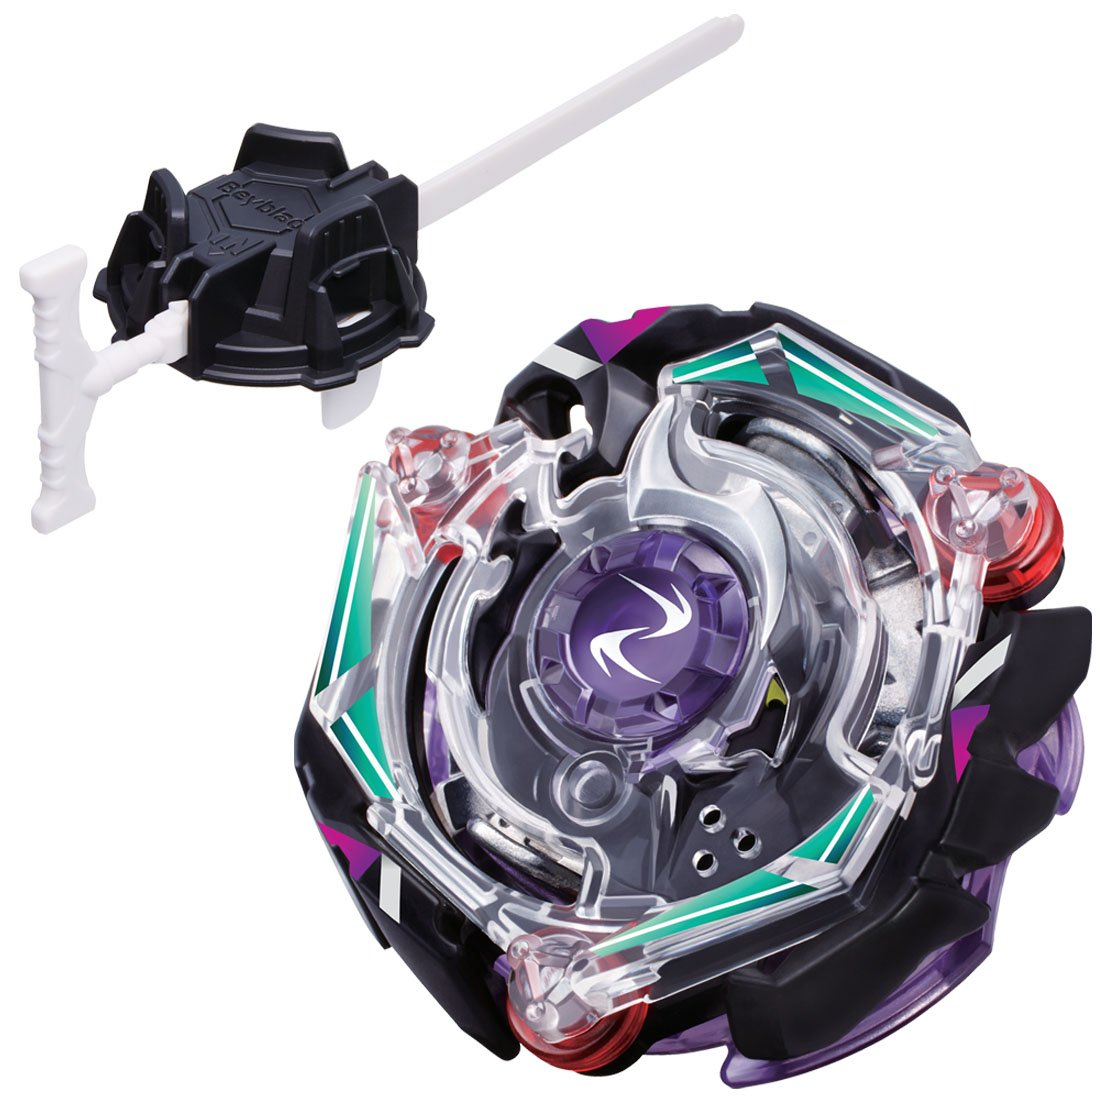 Takaratomy Beyblade Burst B-74 Starter Set Kreis Satan.2G.Lp Defense Type Spinning Top